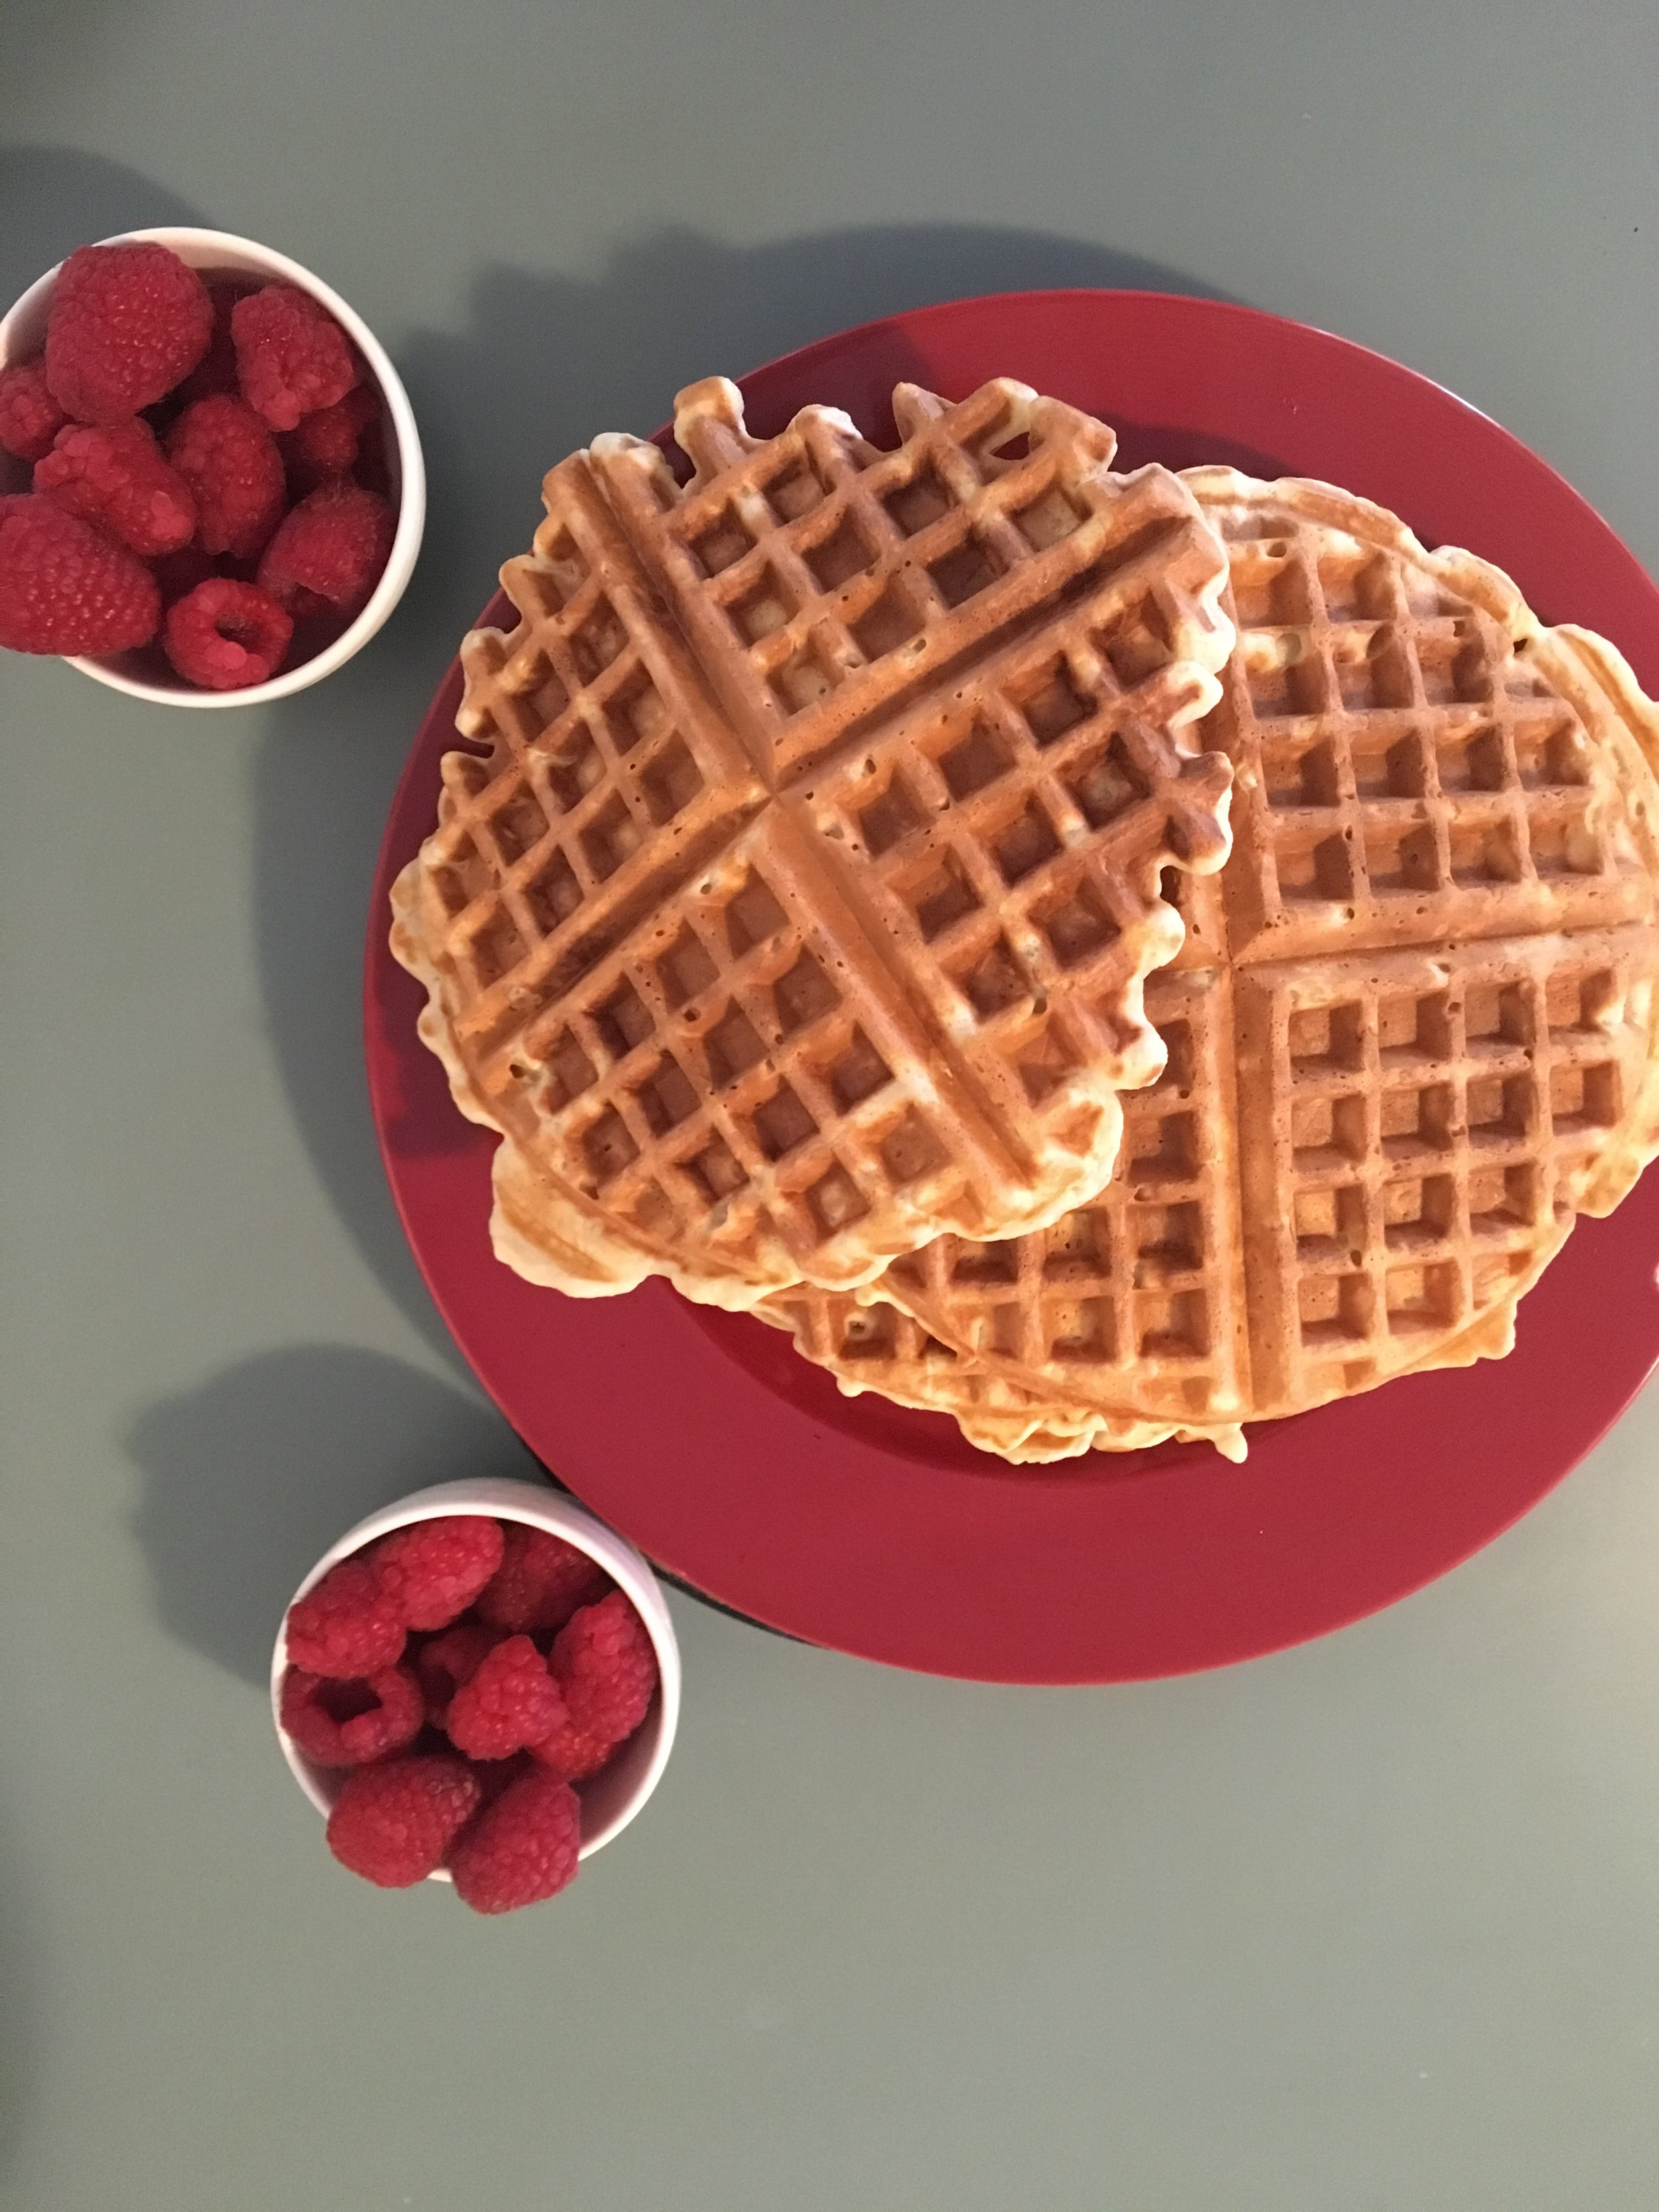 Ready to eat this pile of waffles!